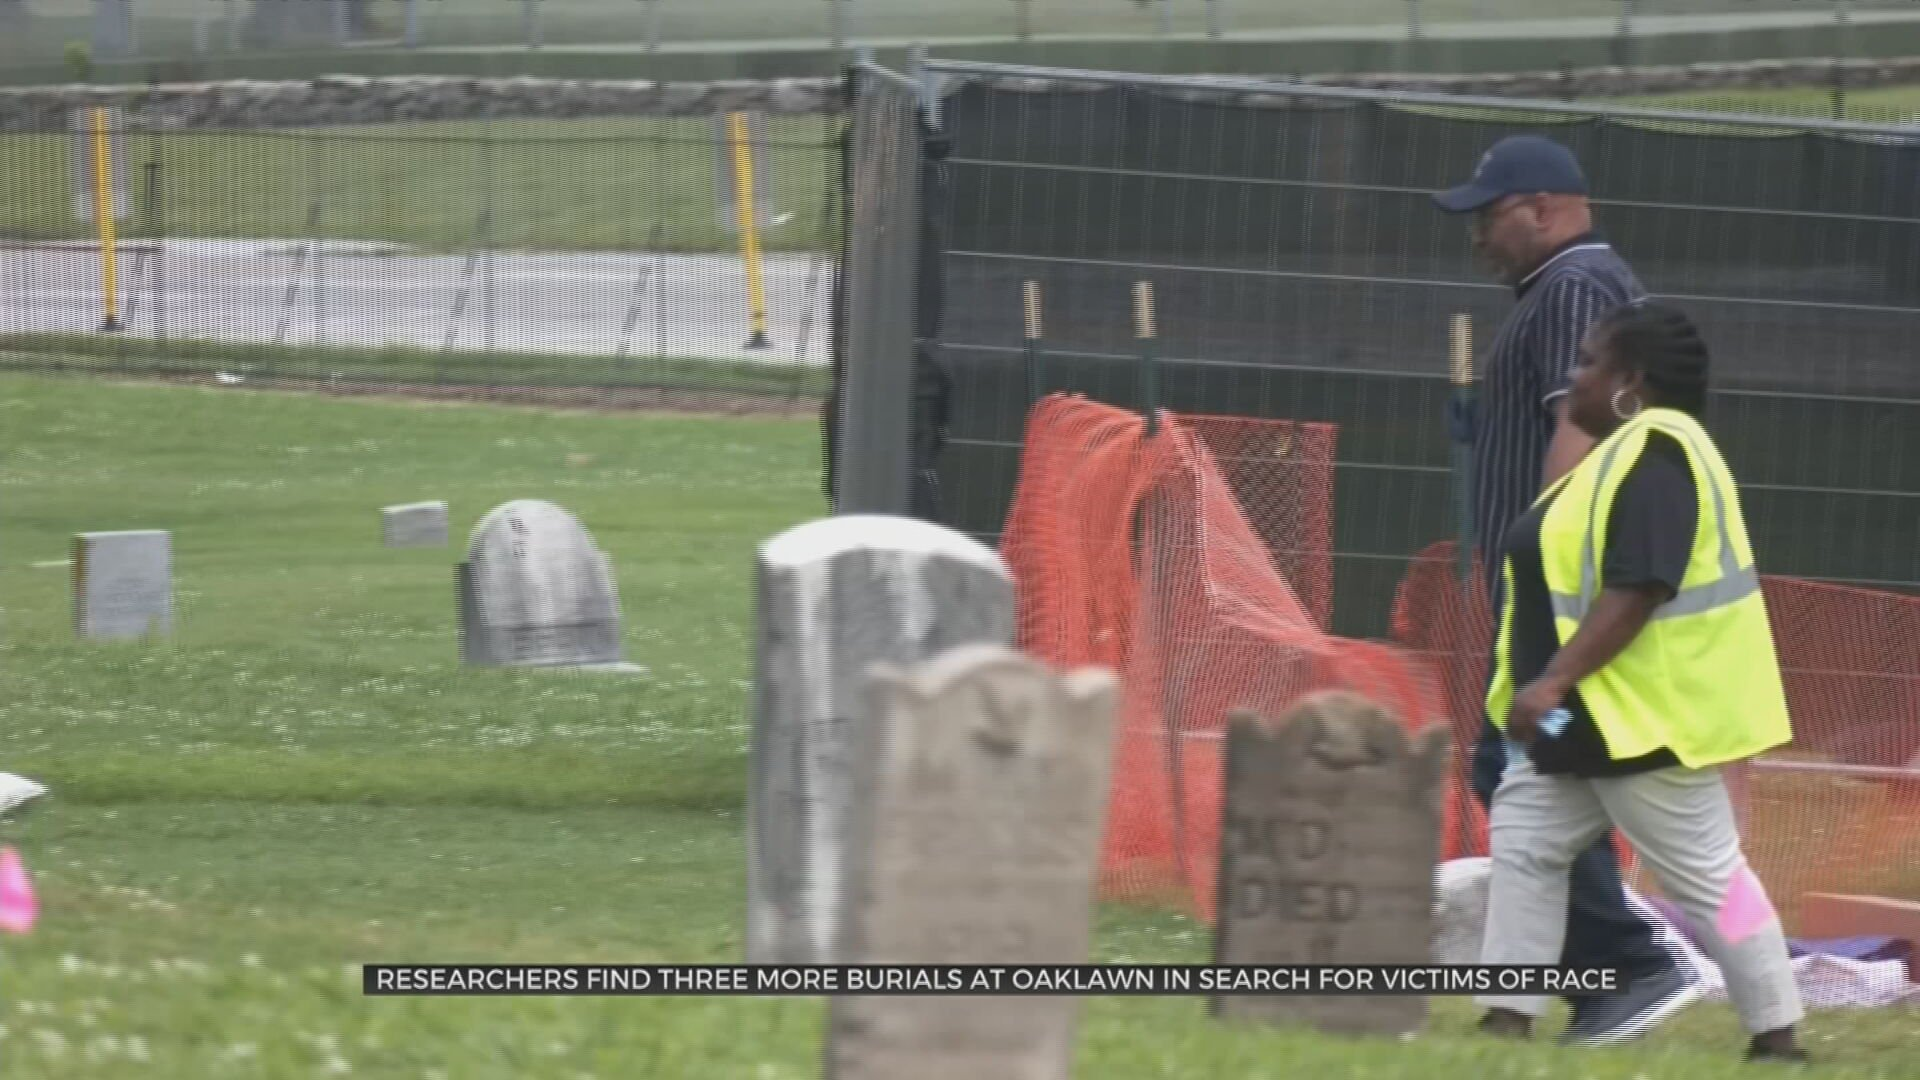 Archeologists Find Coffins Under Headstones For 2 Known Massacre Victims, Say They Are Outside Of Oaklawn's Mass Grave